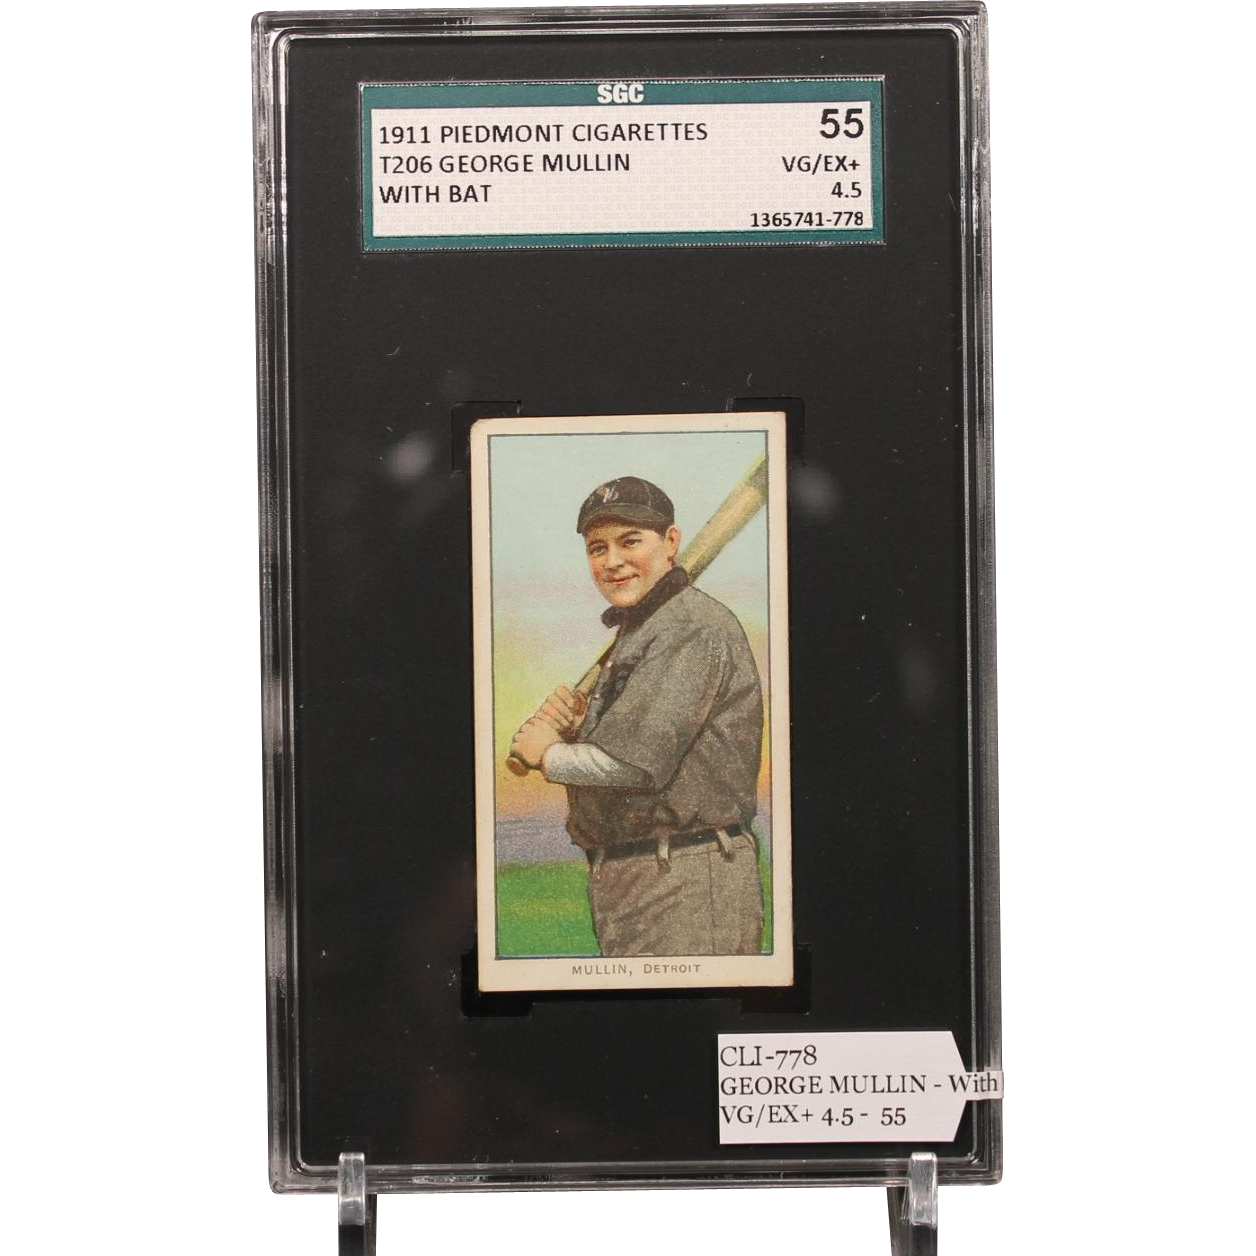 T206 GEORGE MULLIN - With Bat SGC grade 55 VG/EX+ 4.5